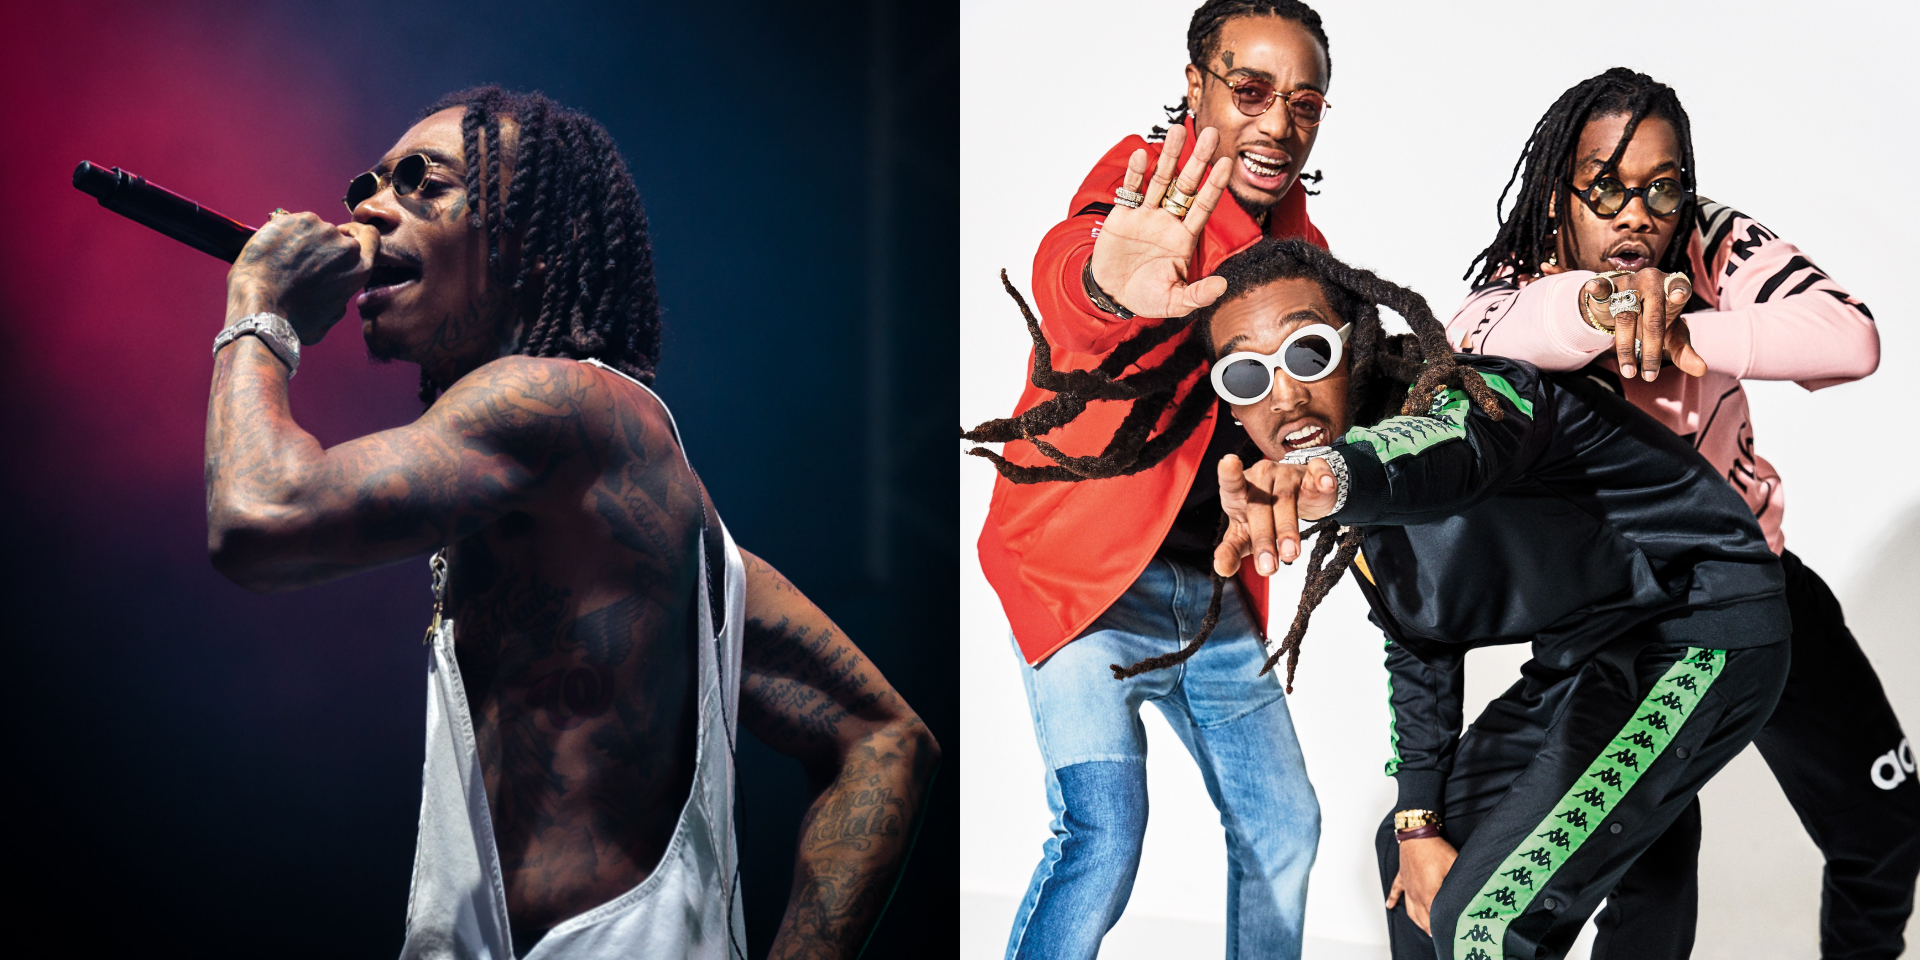 Rolling Loud Hong Kong line-up announced: Migos, Wiz Khalifa, and more